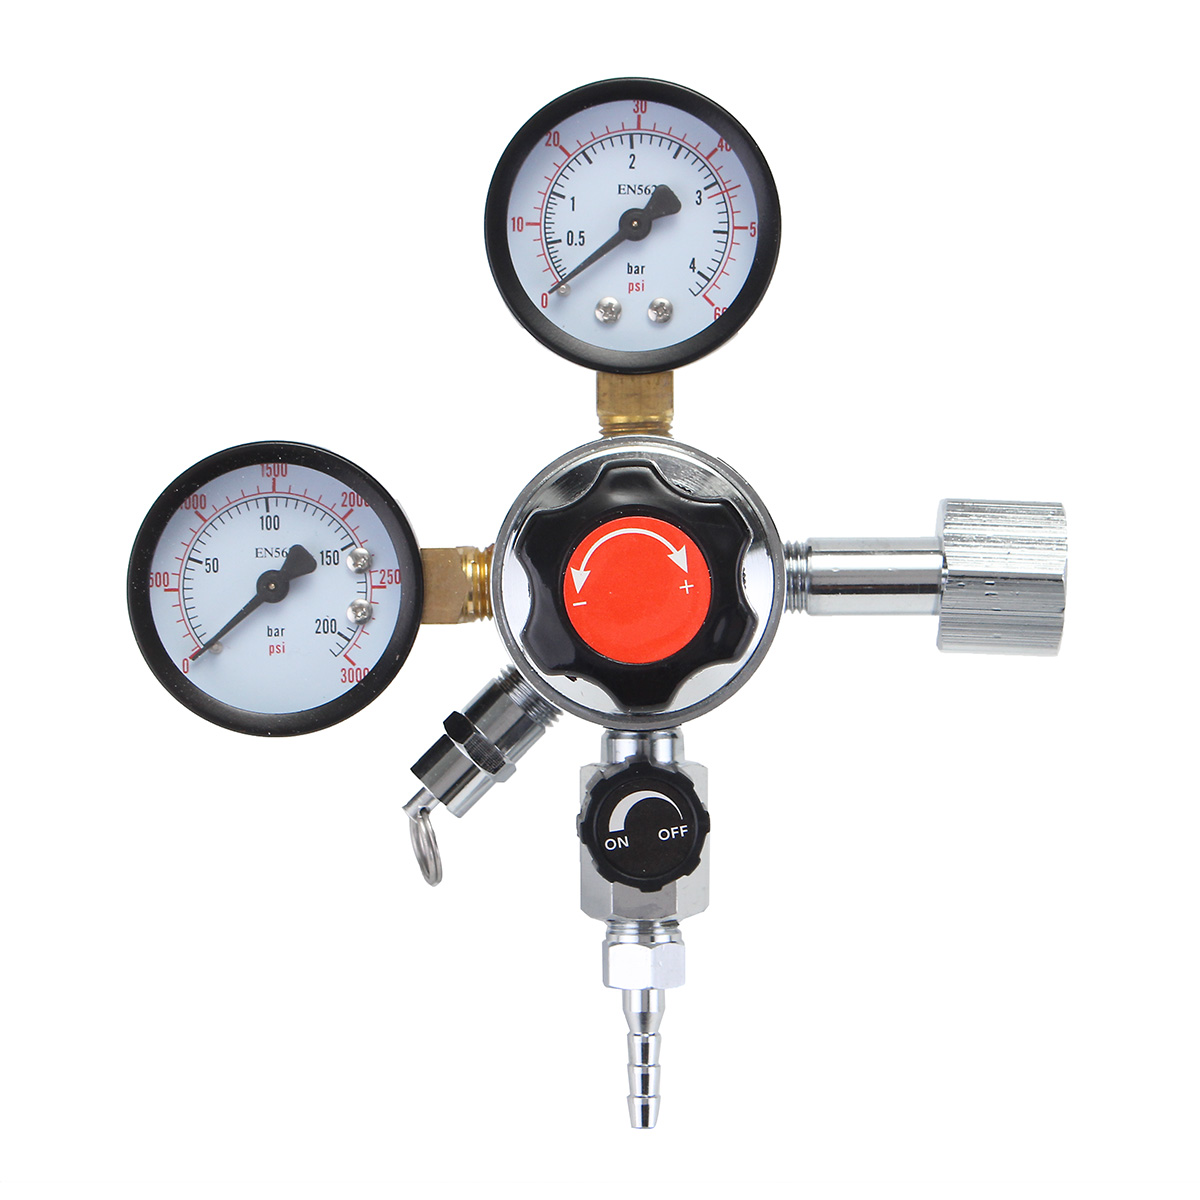 Dual/Triple Gauge CO2 System Regulator Pressure Reducer Flow Meter Valve For Carbon Dioxide Draft Beer / Homebrew 3/16'' 5/16'' цена